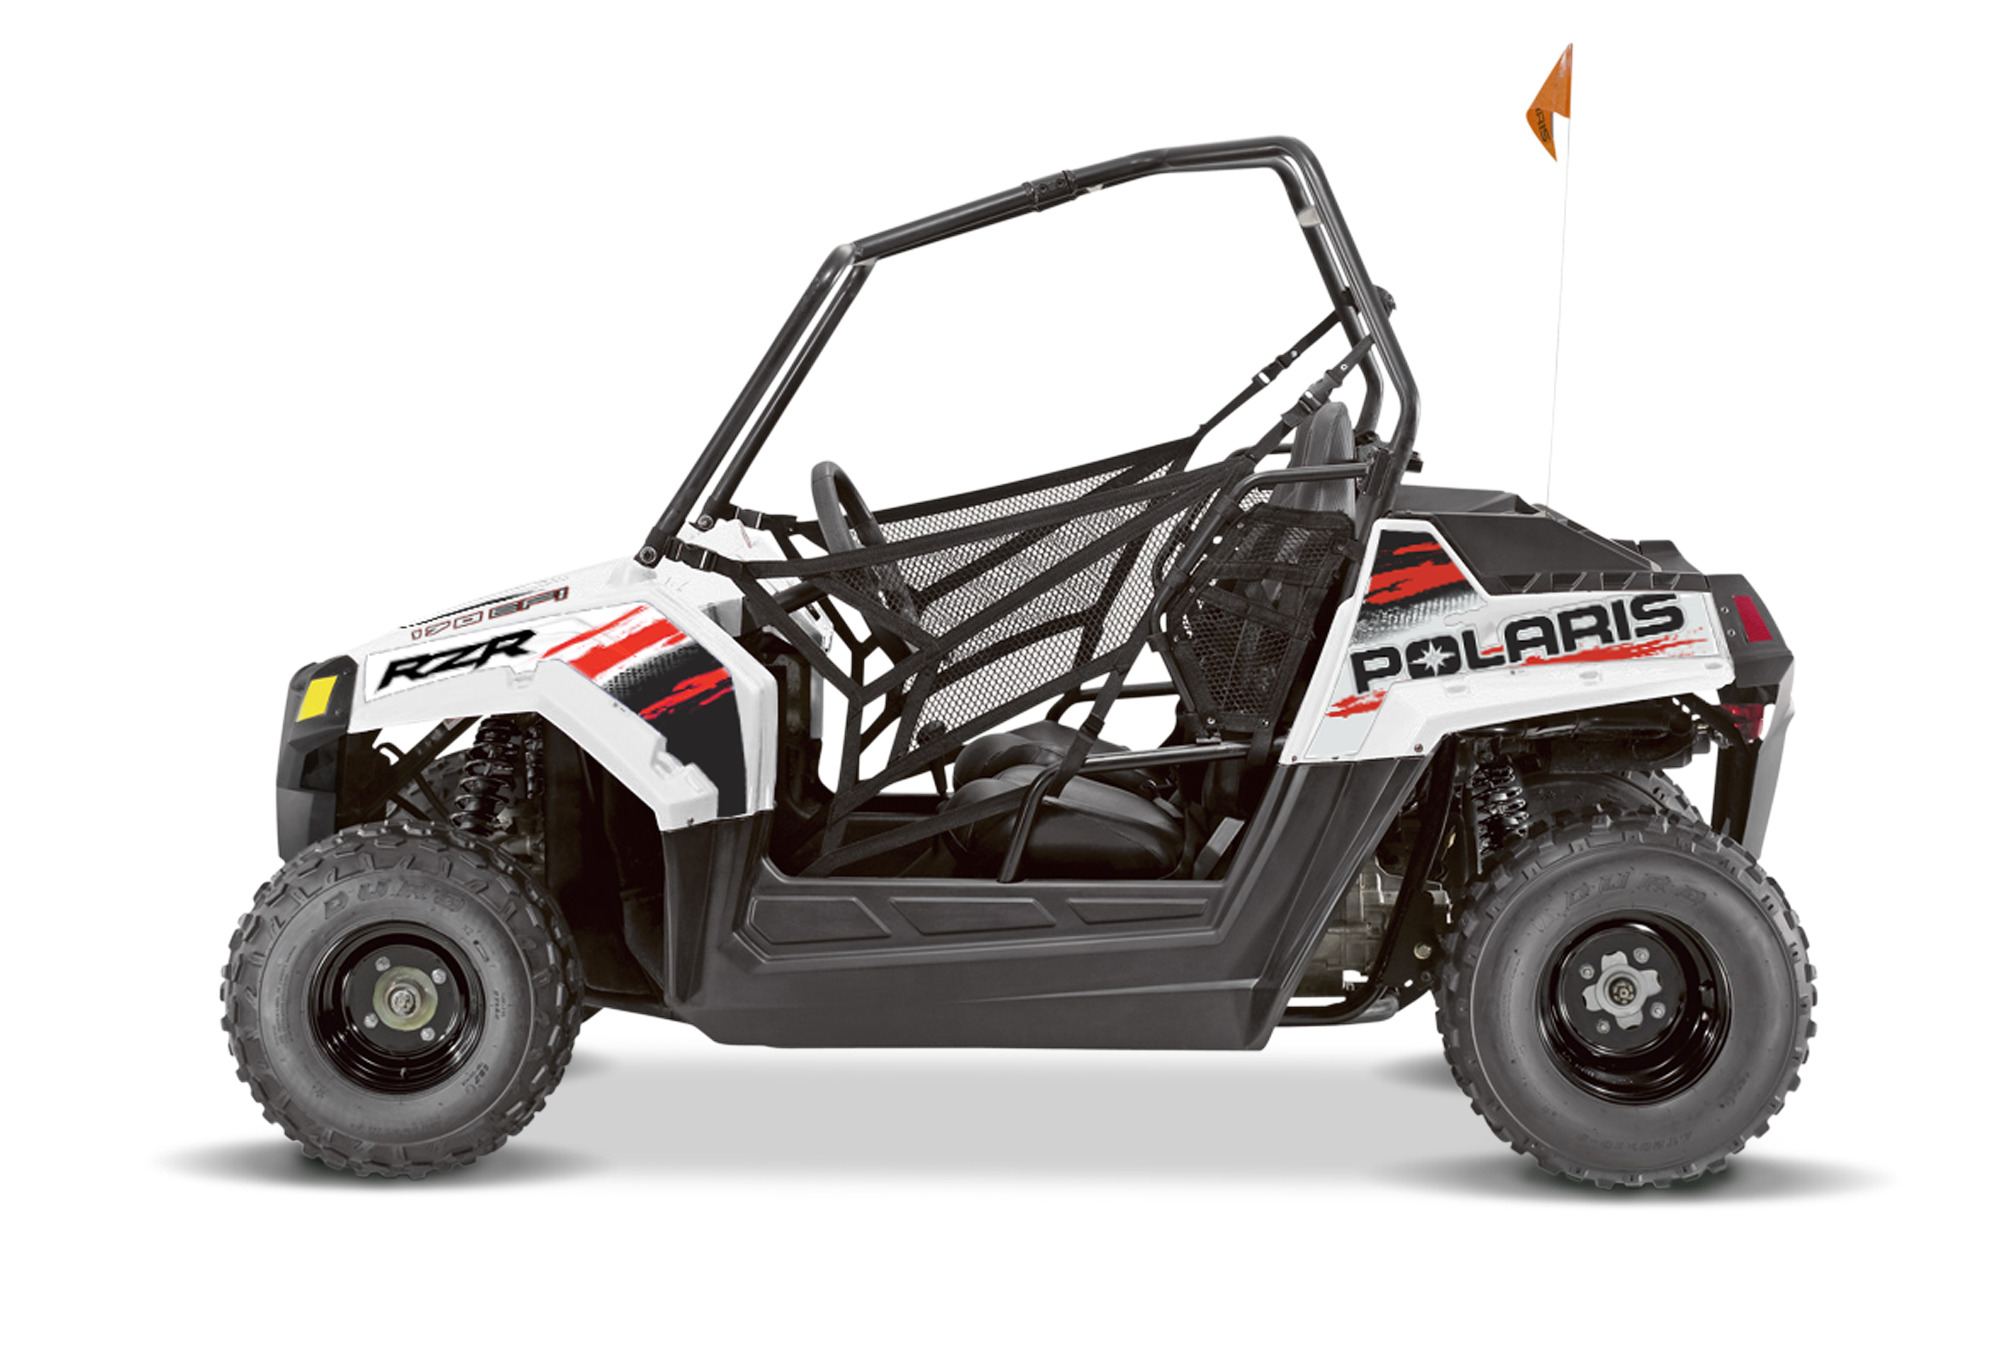 small resolution of 2017 rzr 170 in white